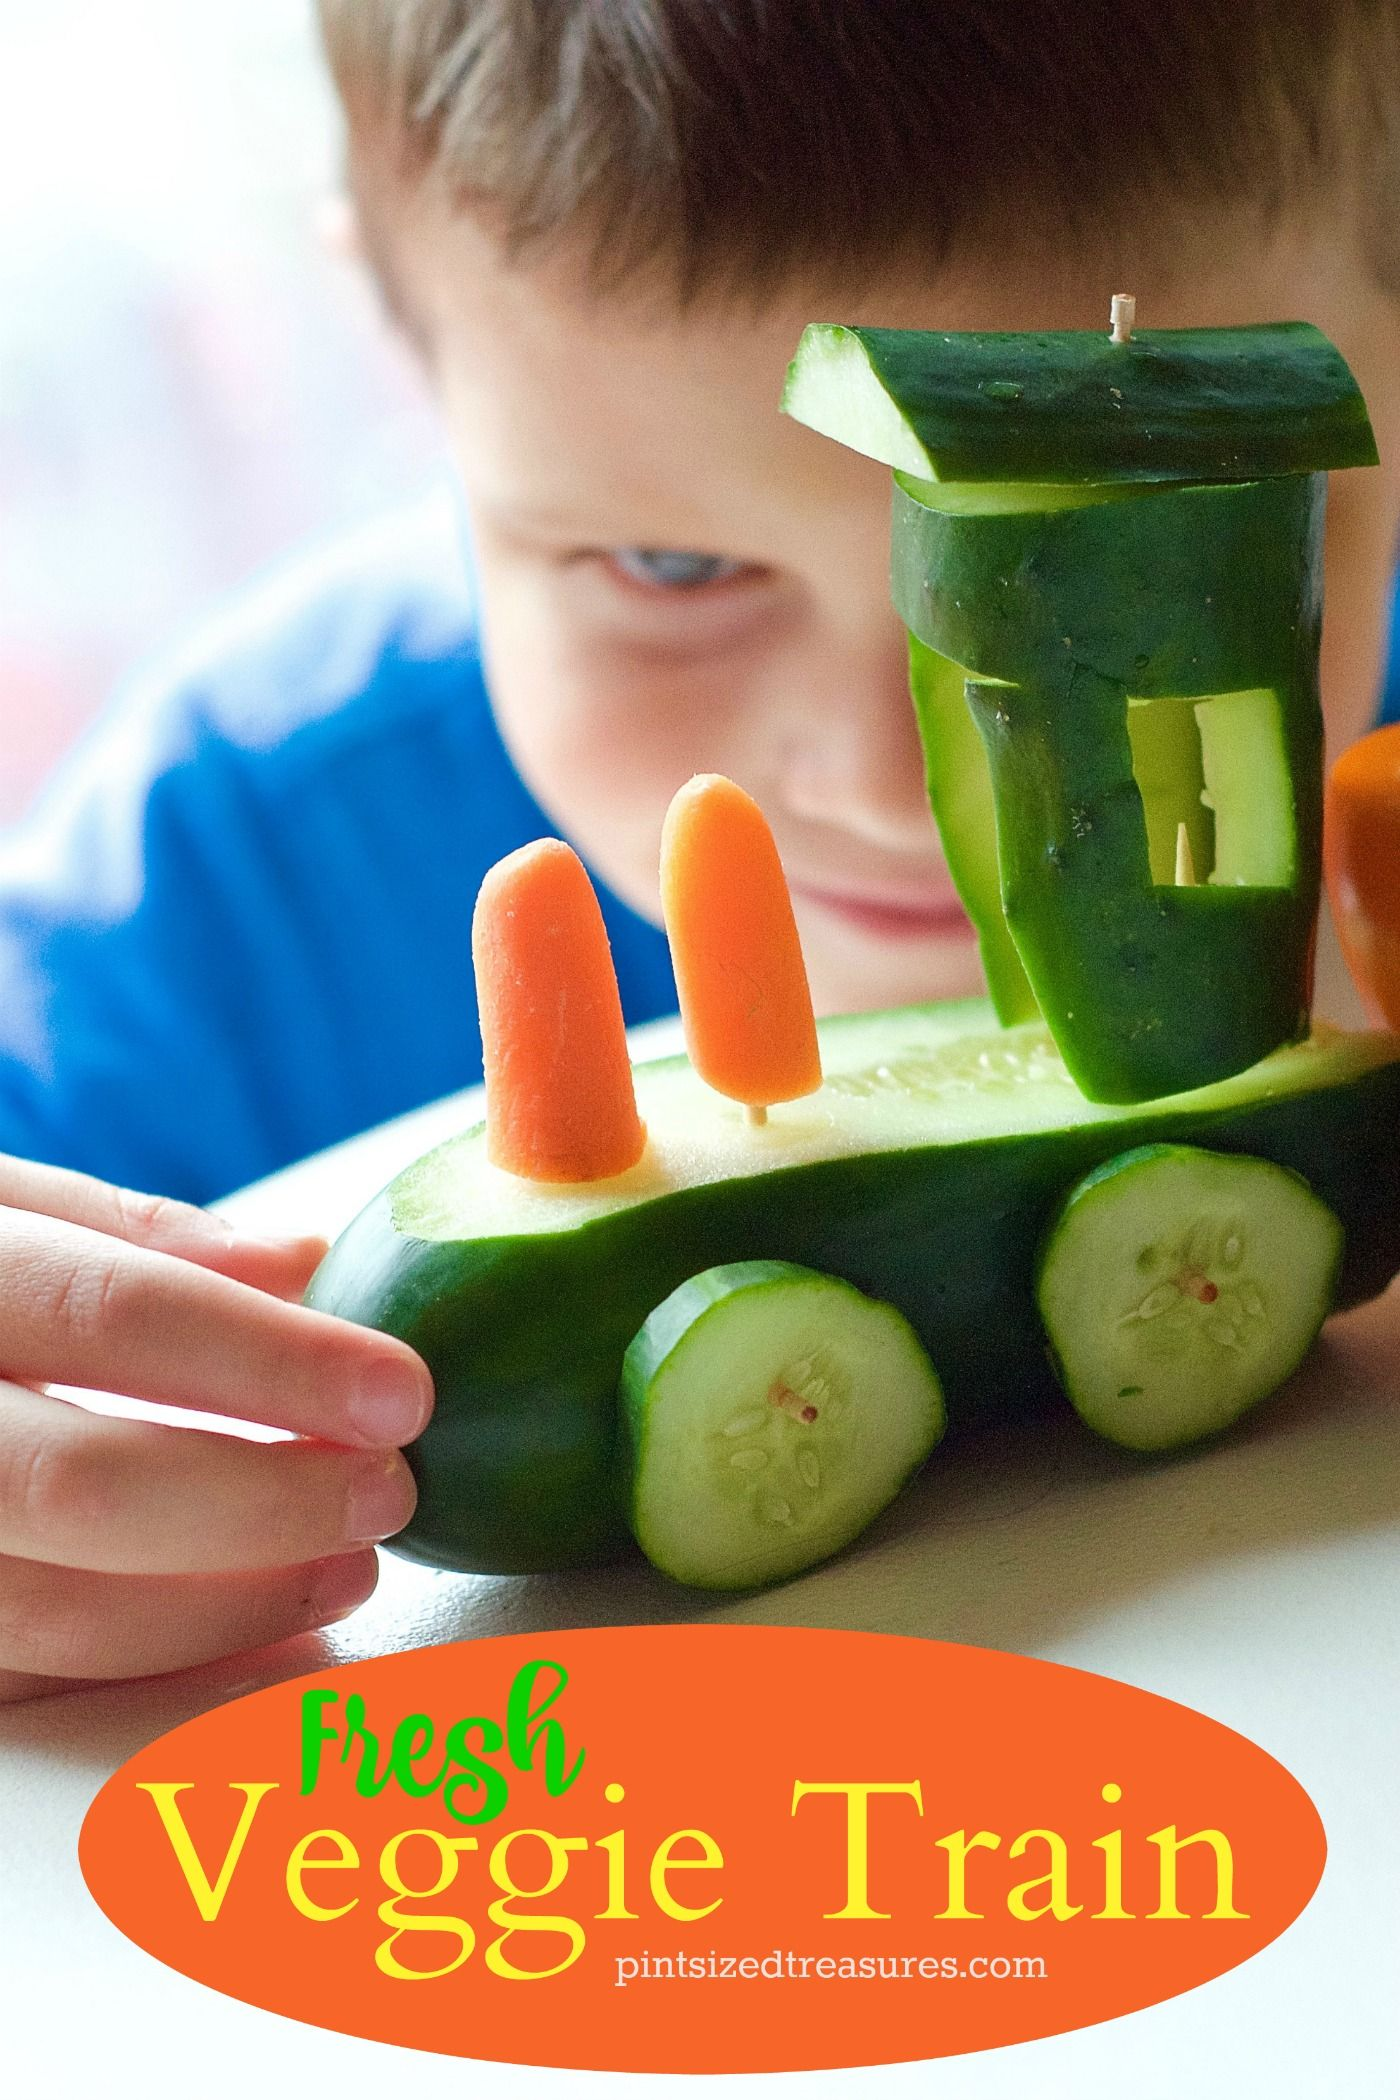 Check out this fresh veggie train that takes veggie trays to a whole other level! Kids will love eating fresh and colorful veggies out of a fun train!